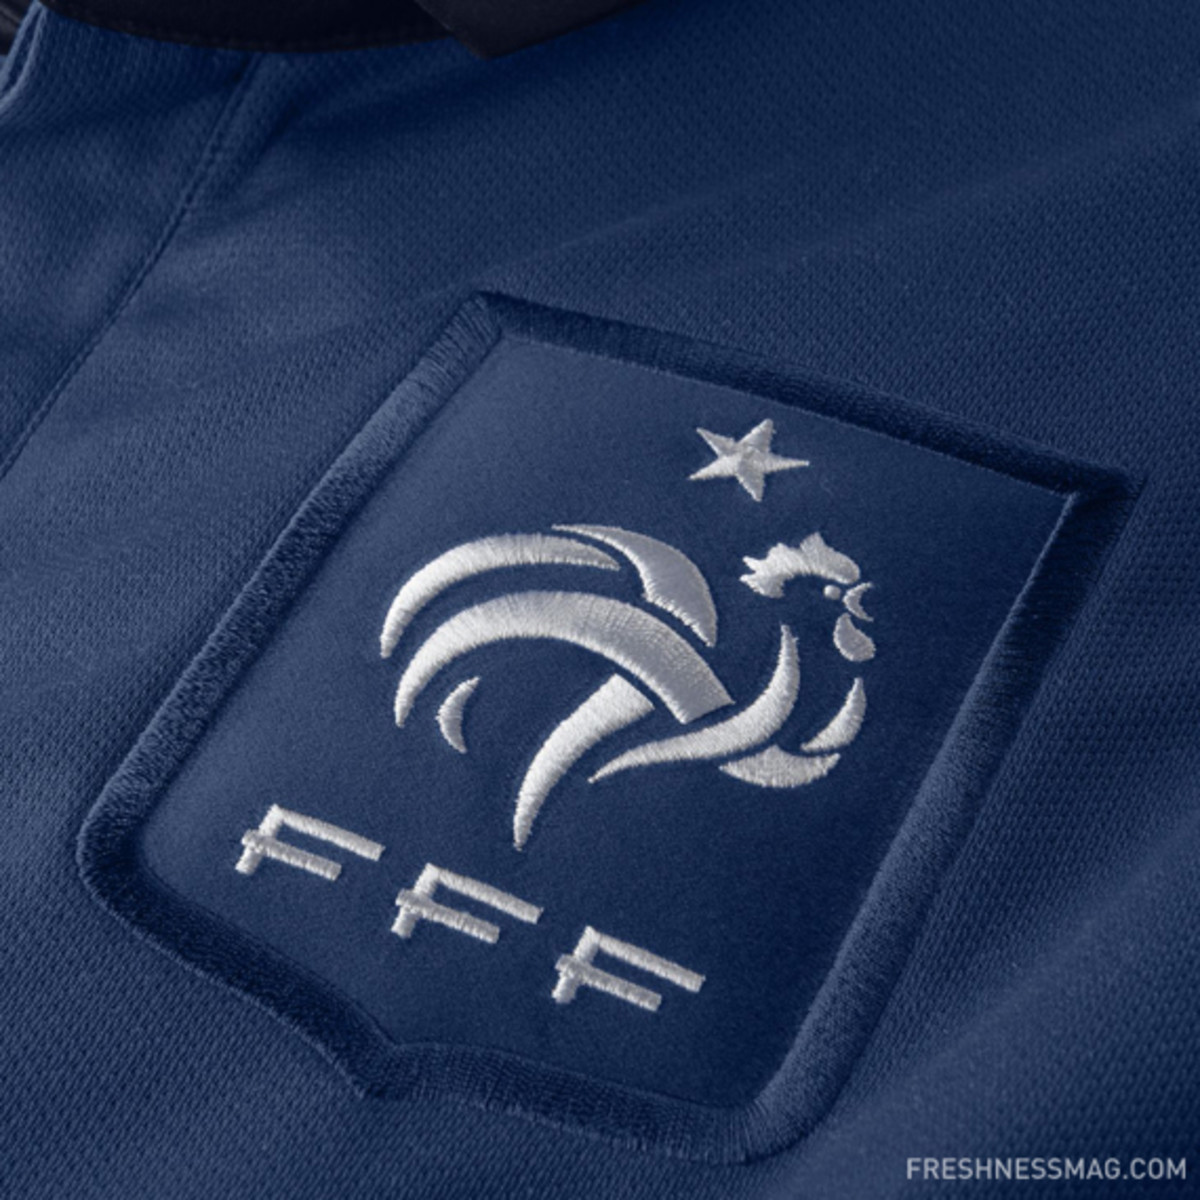 nike-french-football-federation-official-jersey-10